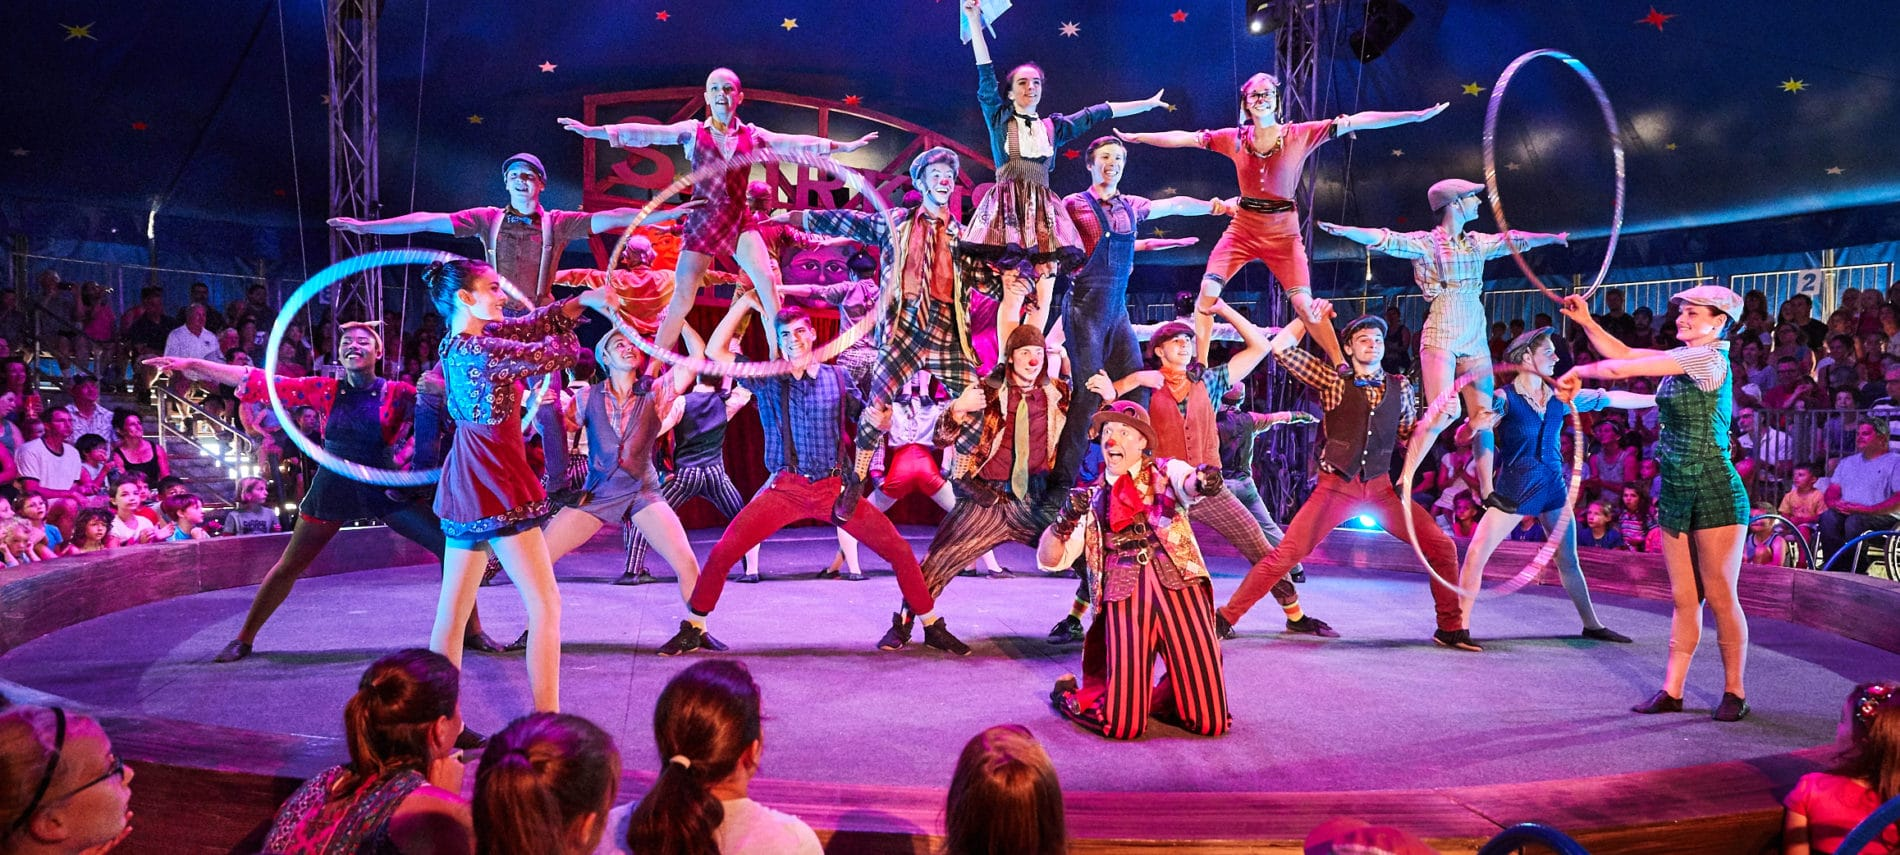 performance cast on stage at the Circus Smirkus Big Top show